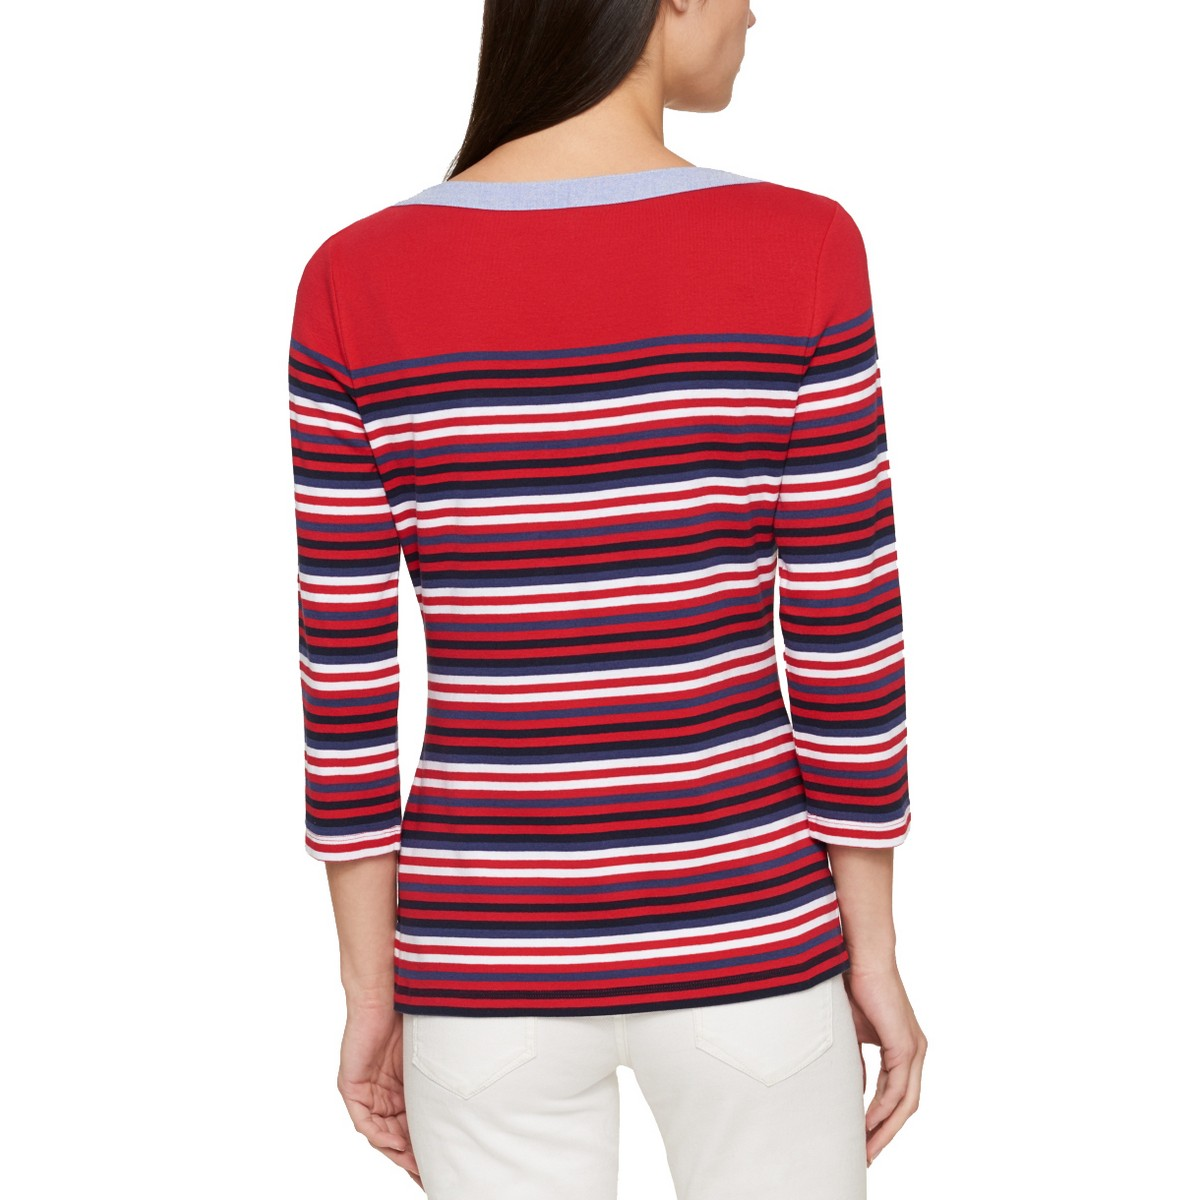 TOMMY-HILFIGER-NEW-Women-039-s-Cotton-Striped-Boat-Neck-Casual-Shirt-Top-TEDO thumbnail 6